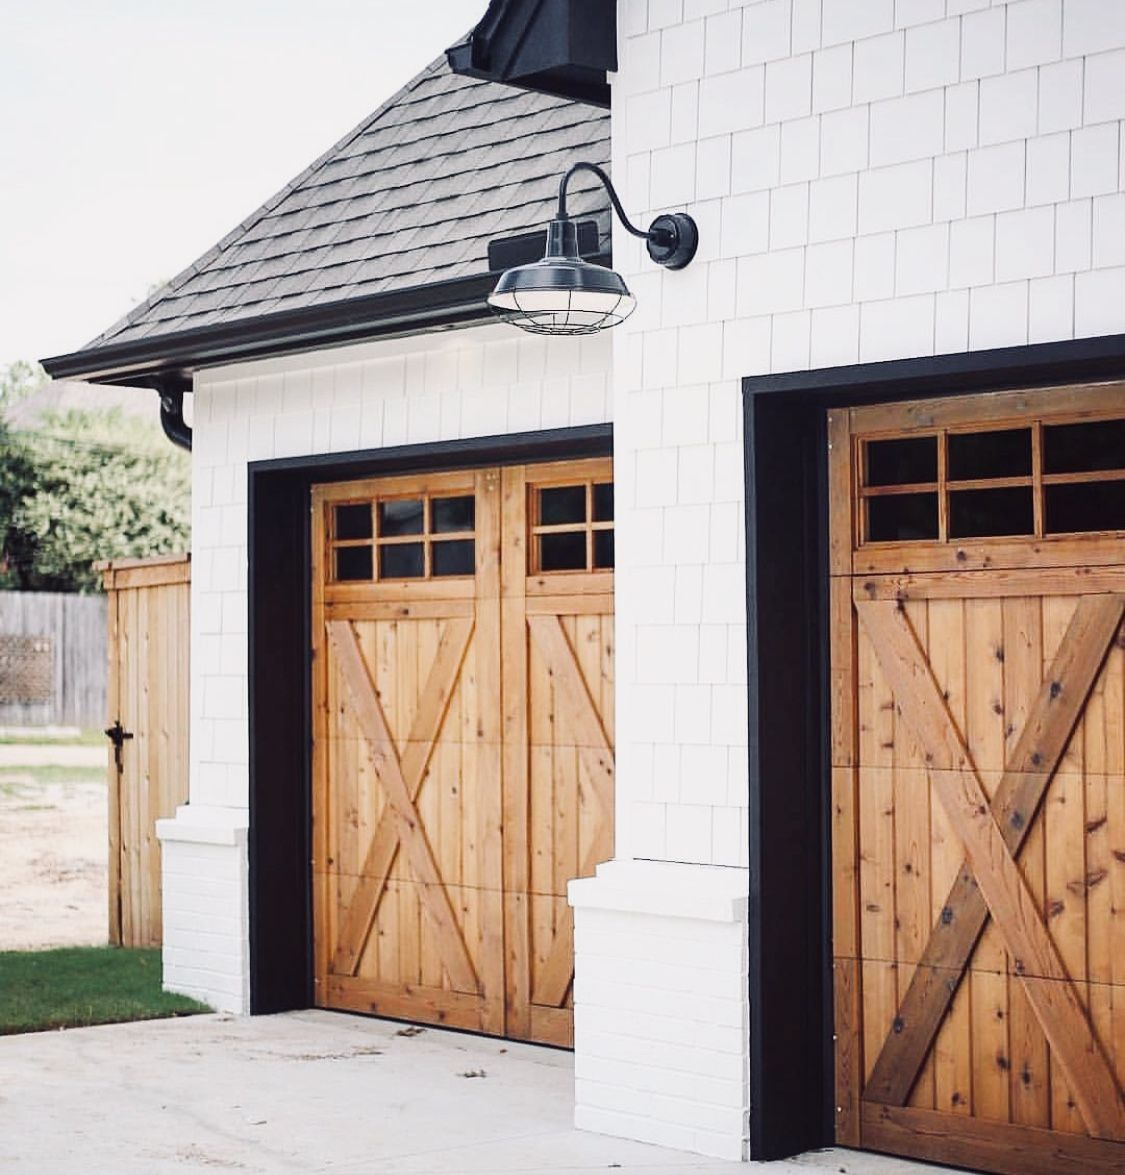 Wood Rustic Farmhouse Garage Doors White Siding Black Roof Garage Door Design Farmhouse Exterior Dream House Exterior